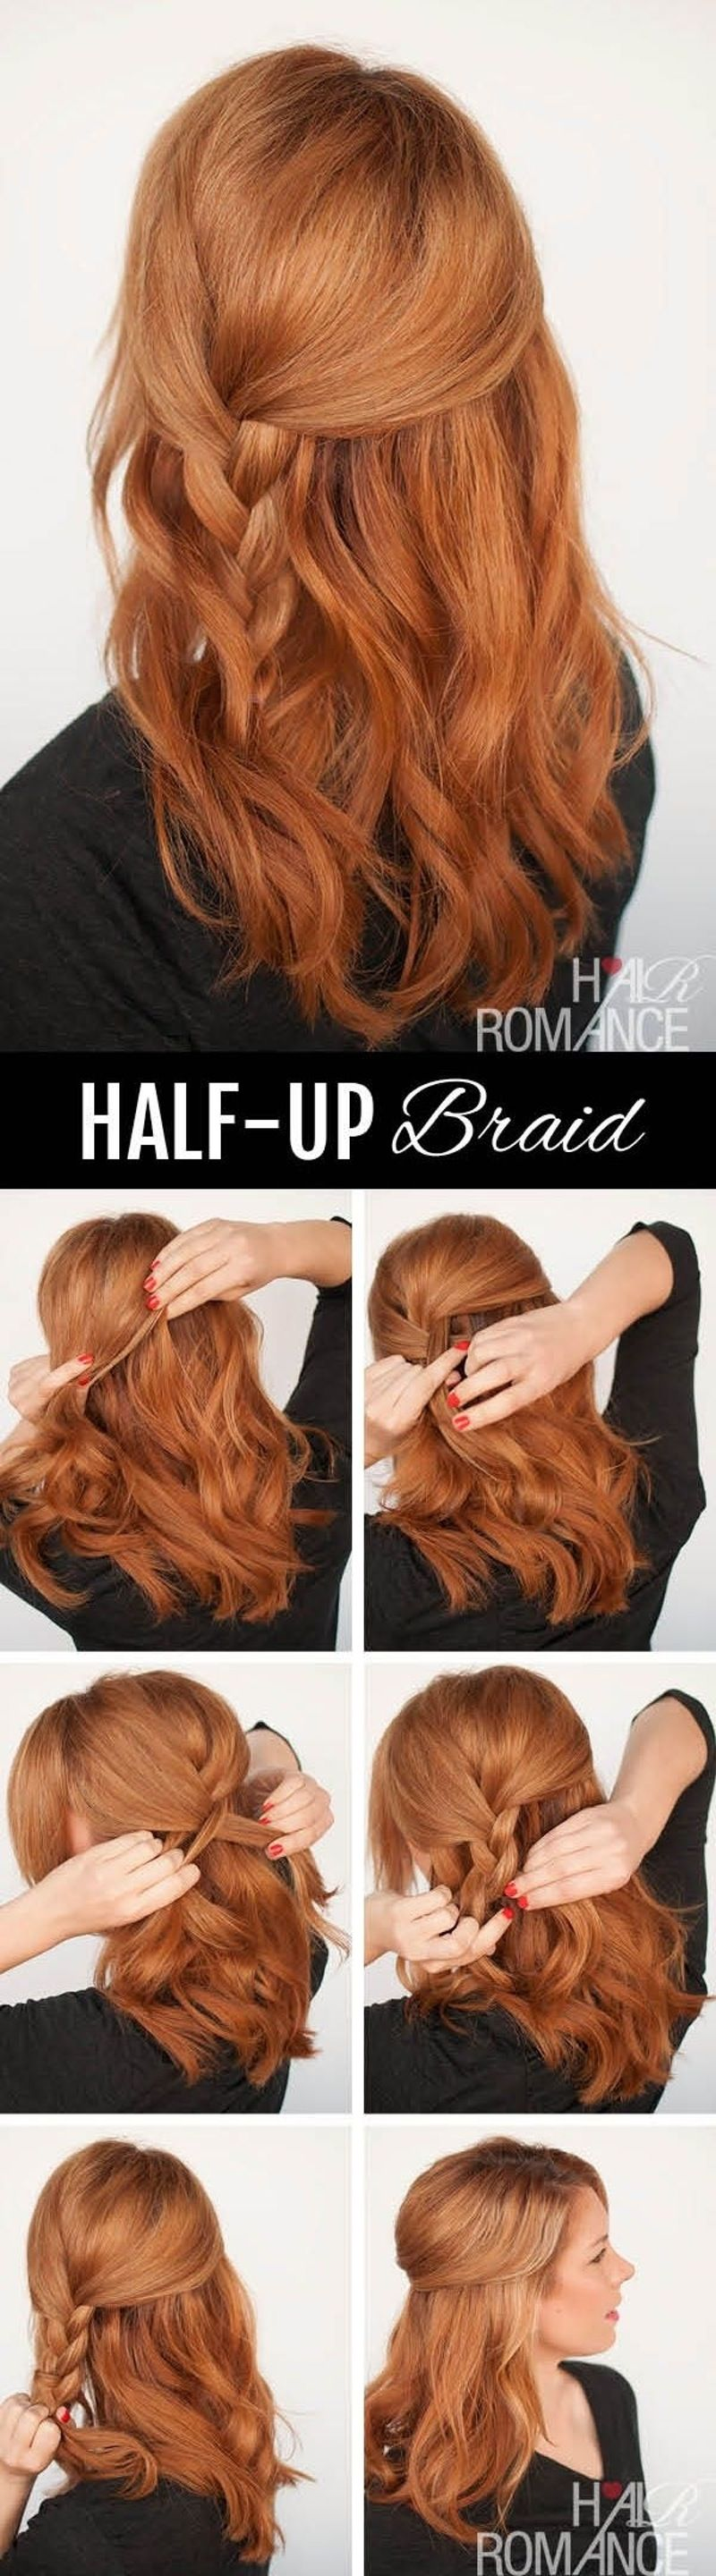 half up side braid hairstyle fancy braided hairstyle